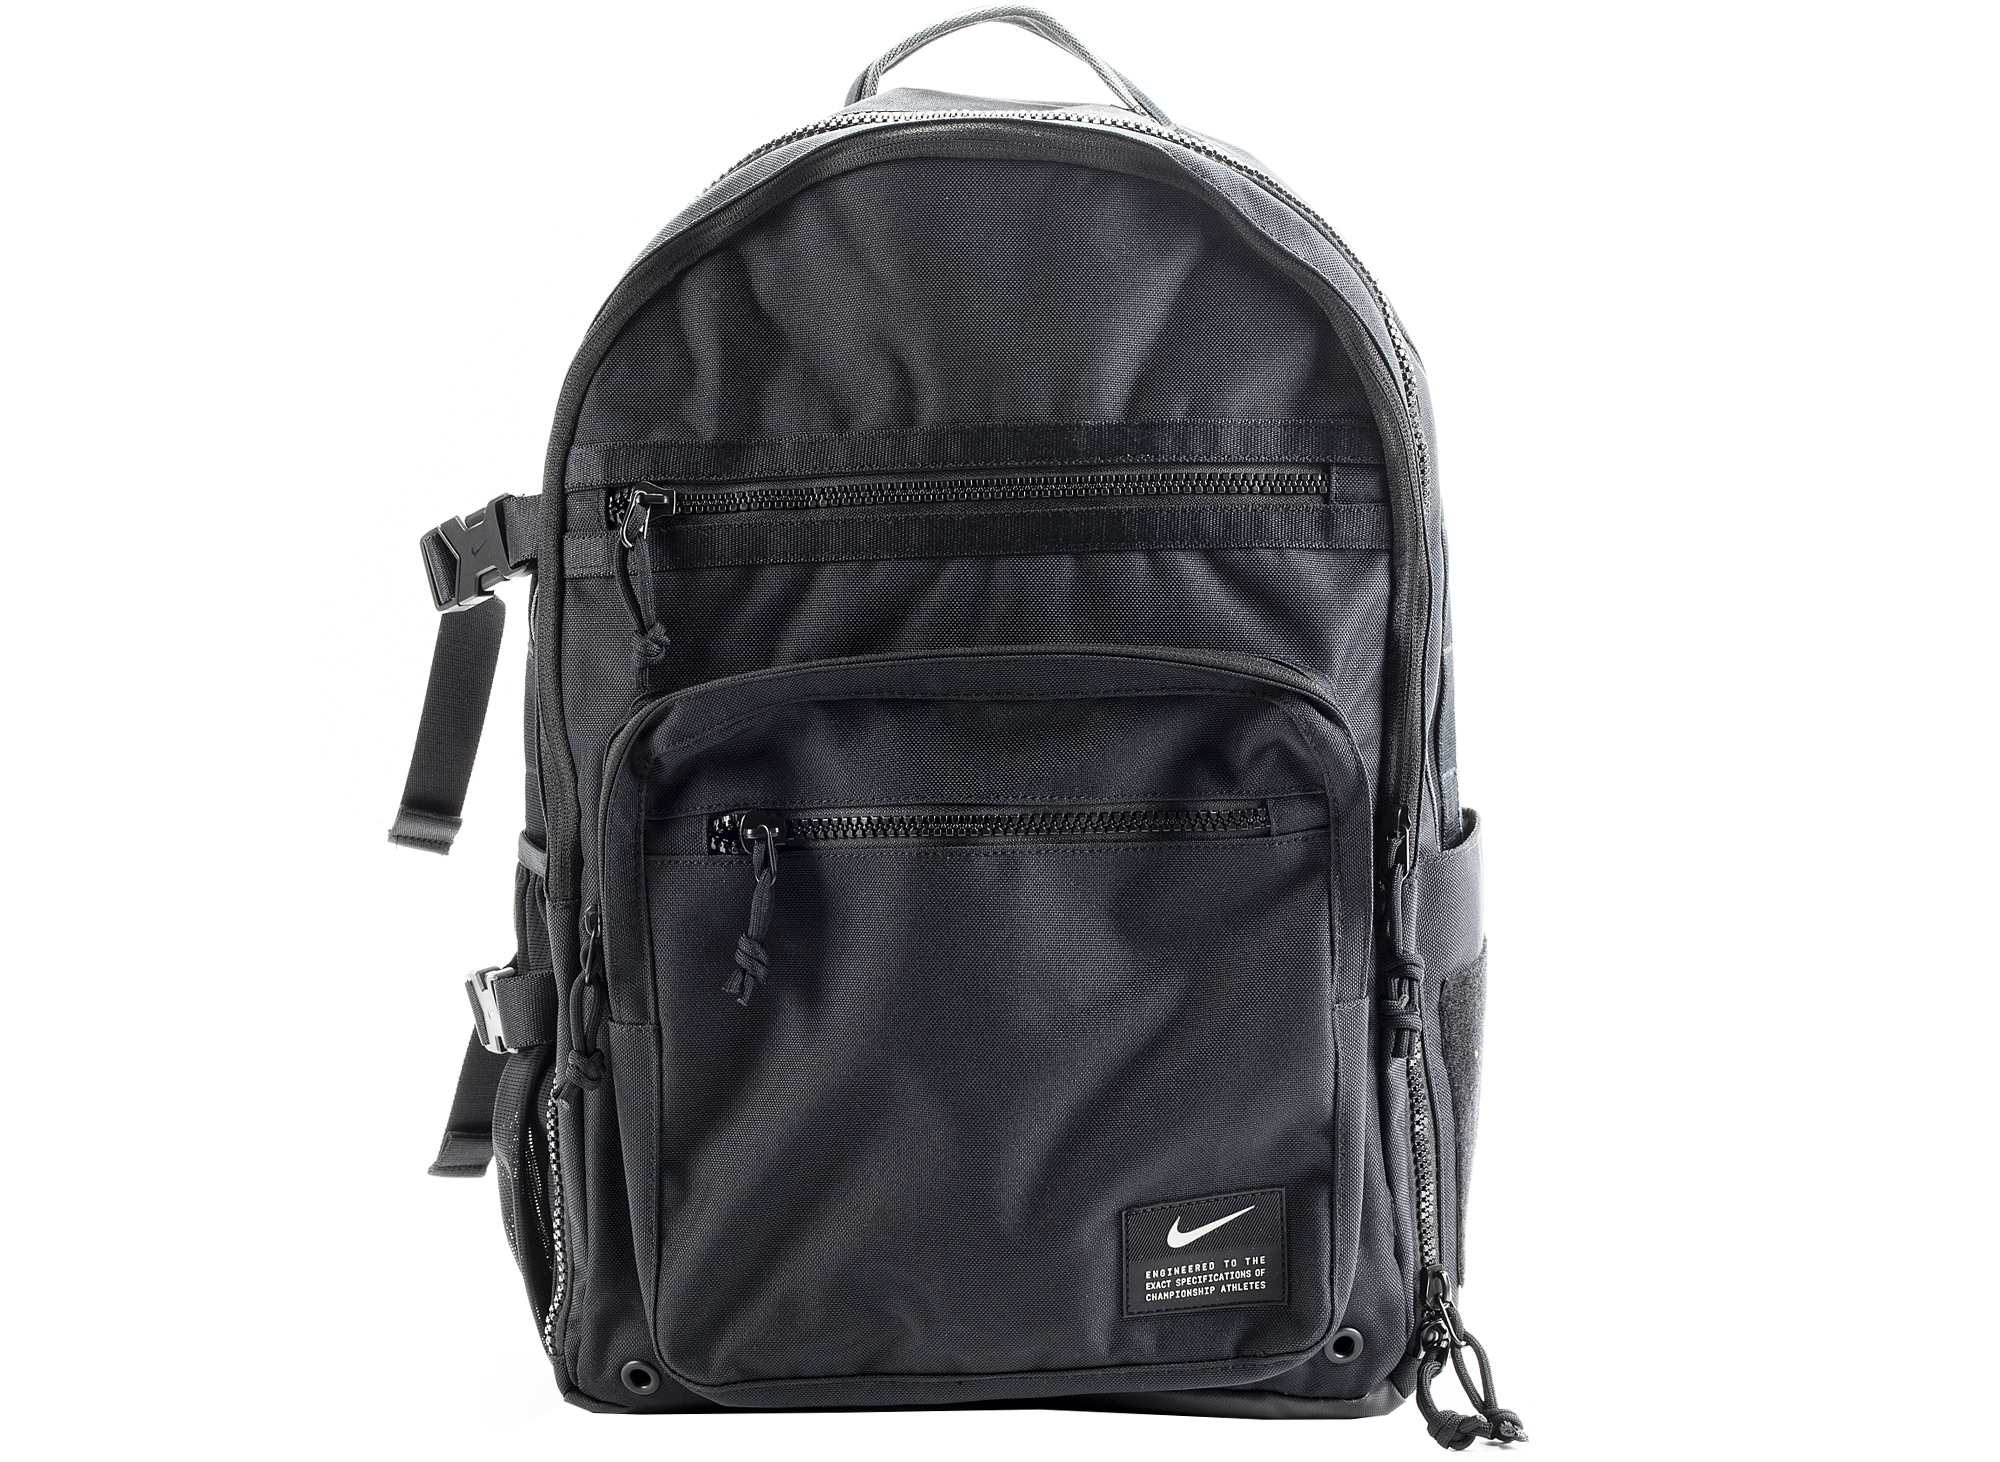 Nike Utility Power Backpack in Black